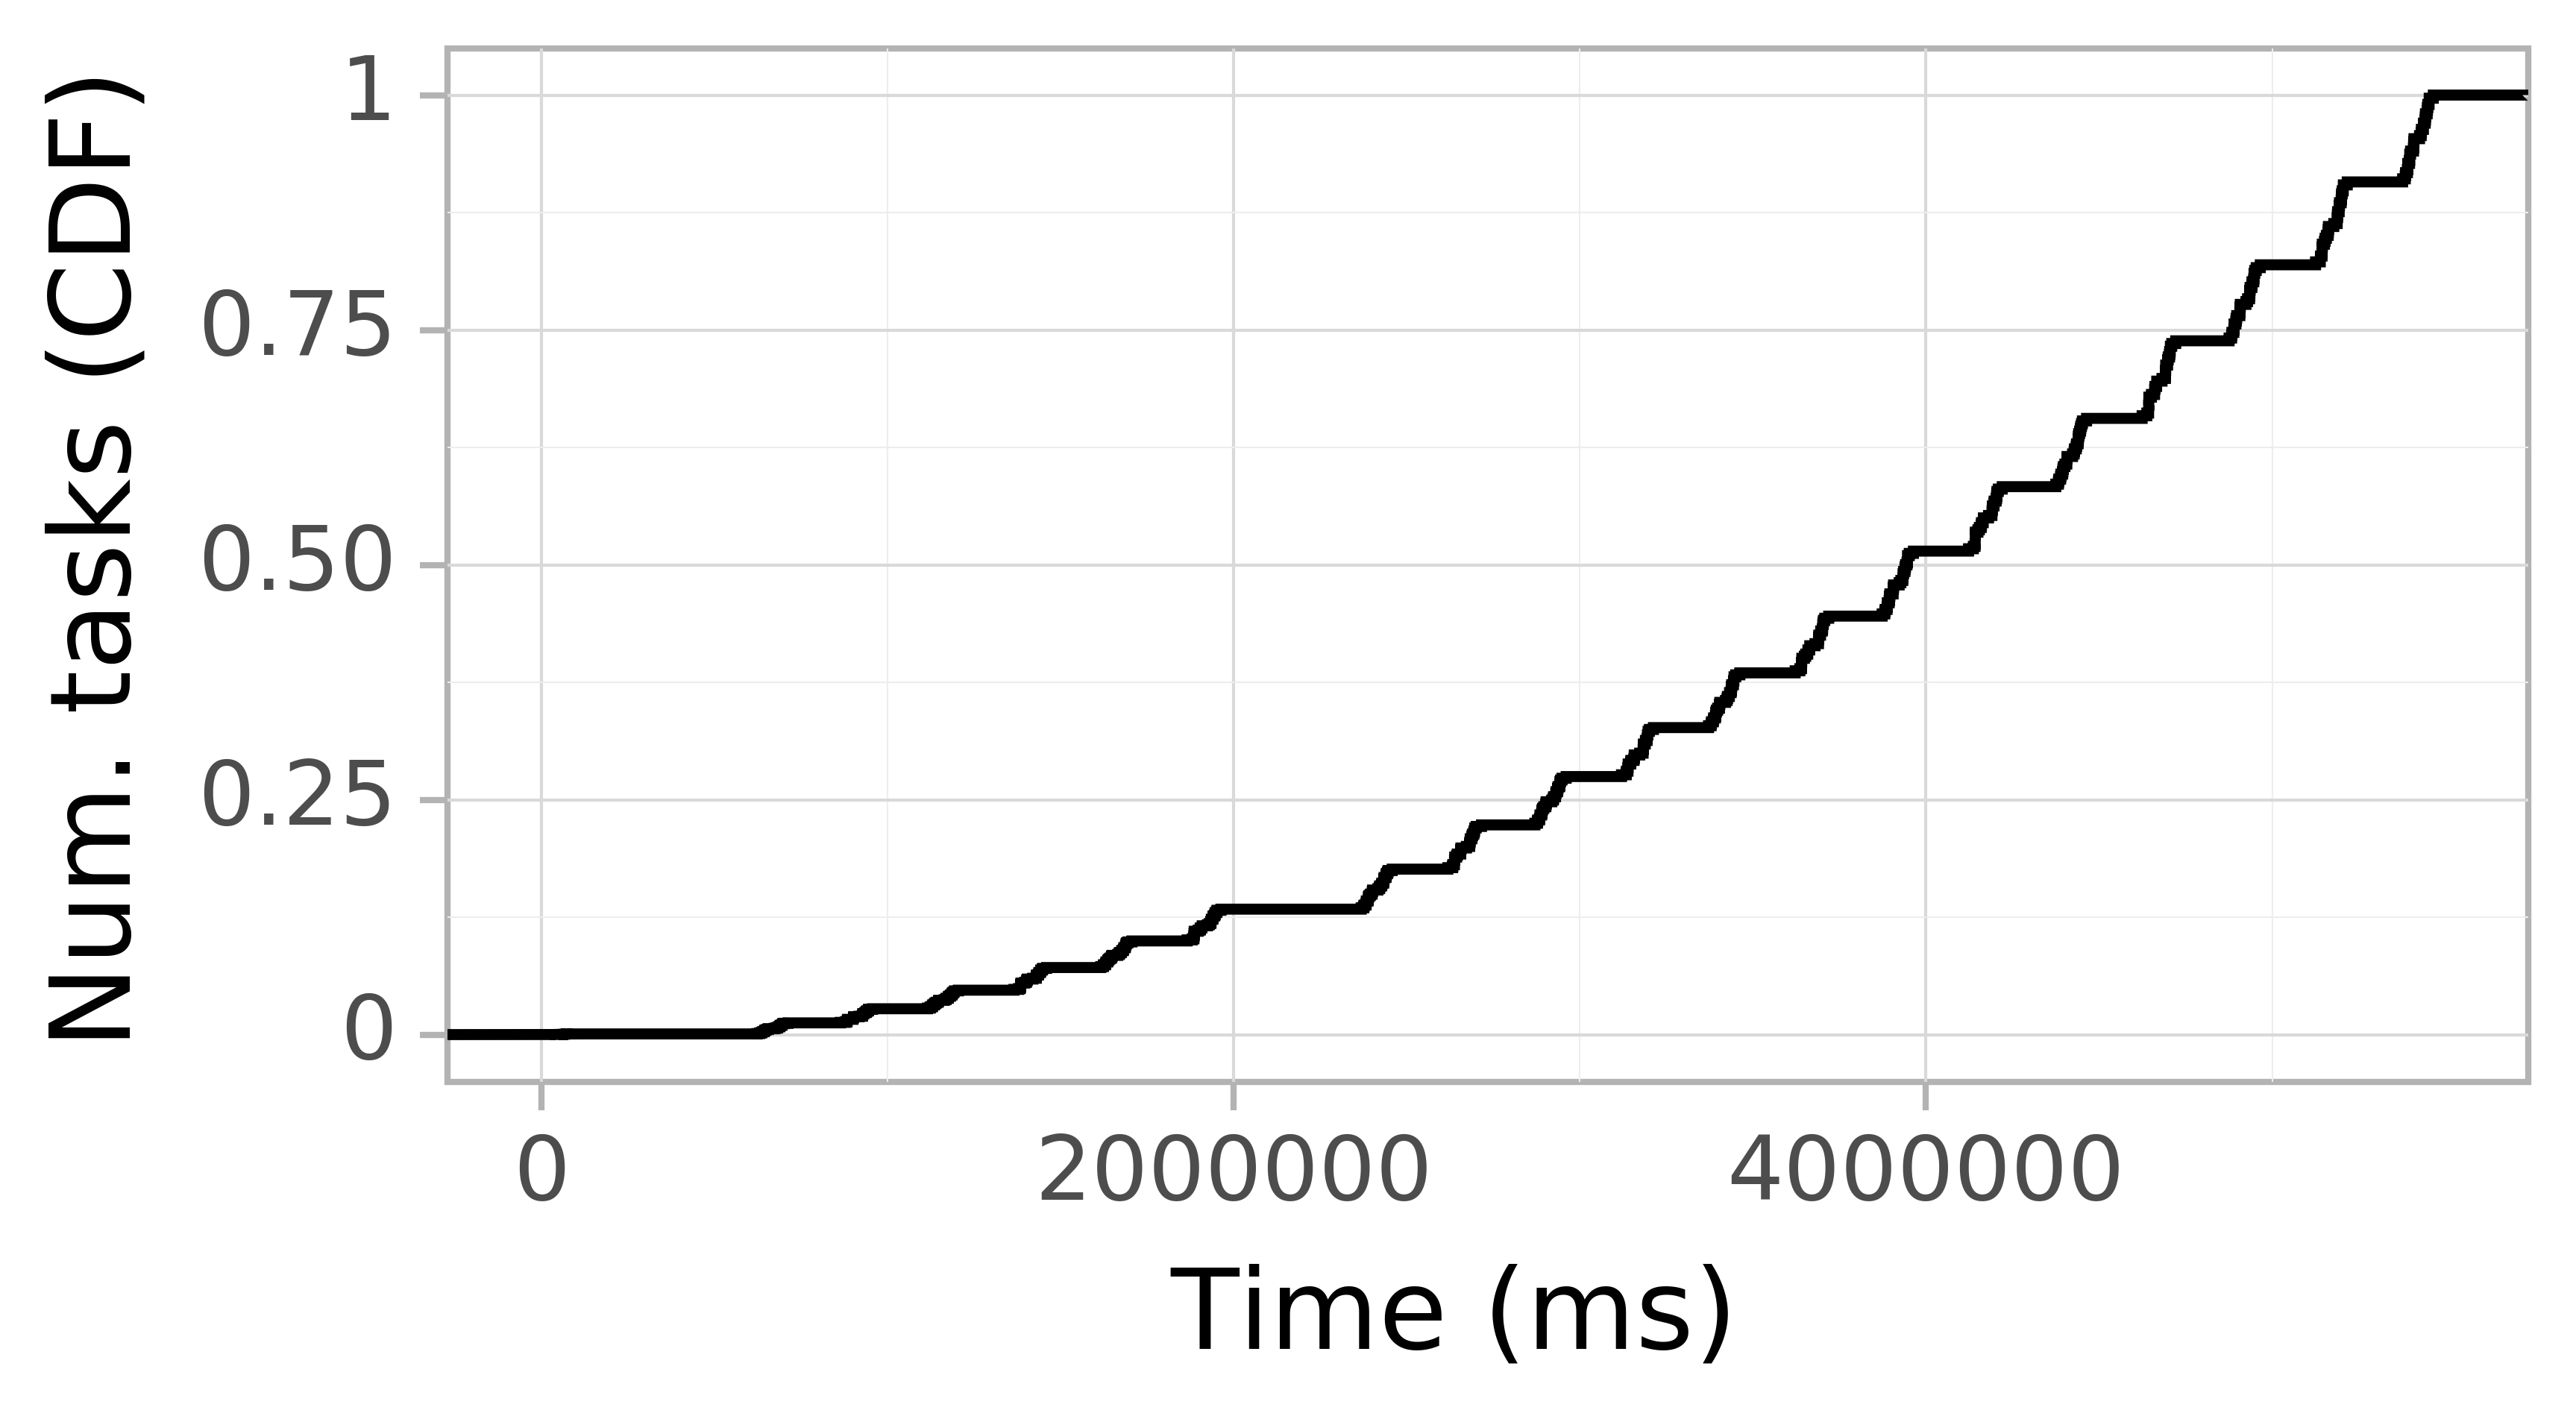 Task arrival CDF graph for the askalon-new_ee40 trace.